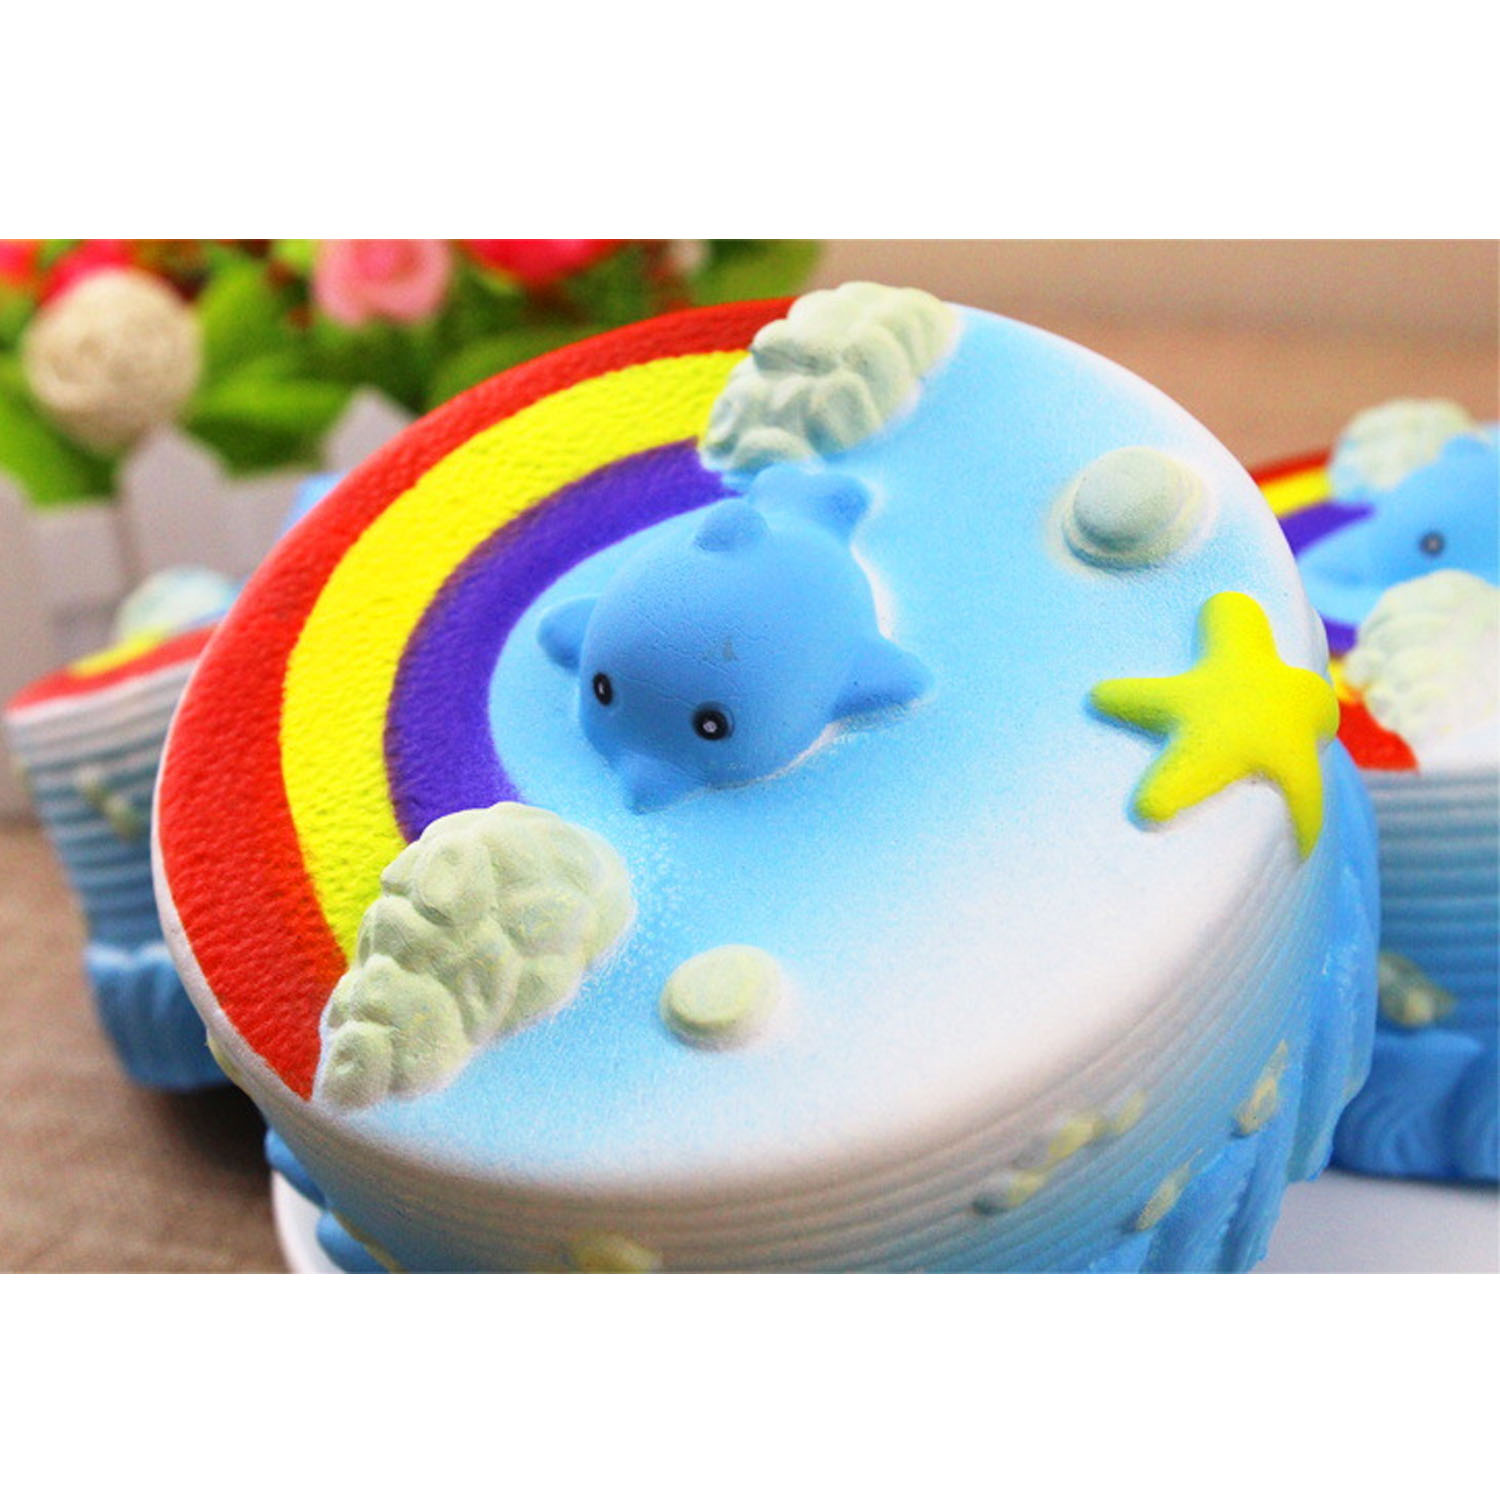 Toys R Us Küchenspielzeug Us 4 89 45 Off Besegad Cute Kawaii Soft Squishy Rainbow Cake Slow Rising Squeeze Toy For Kids Adults Relieves Stress Anxiety Props Squishies In